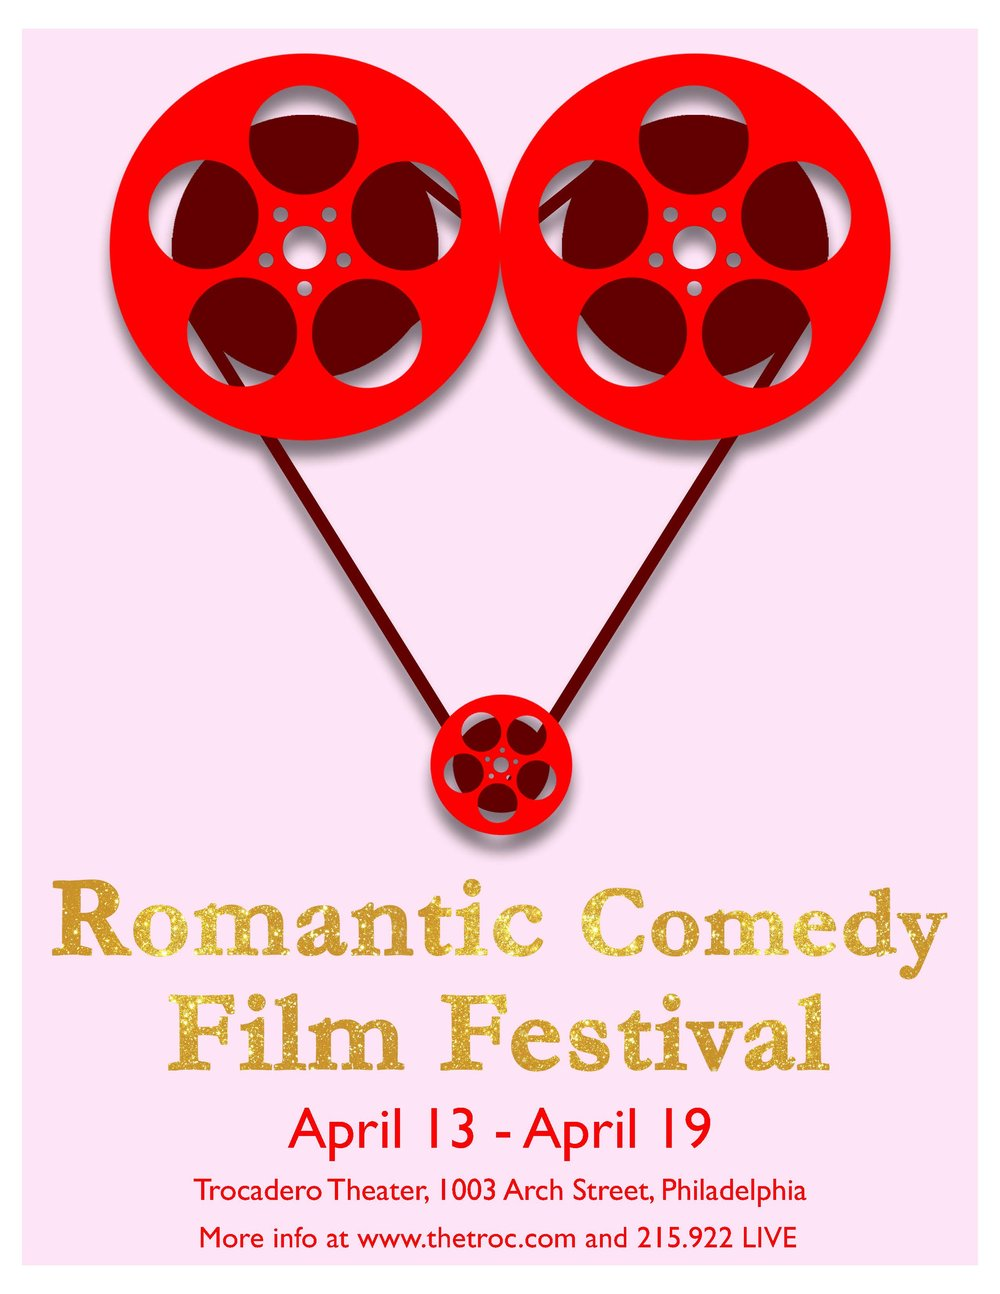 Romantic comedy film festival